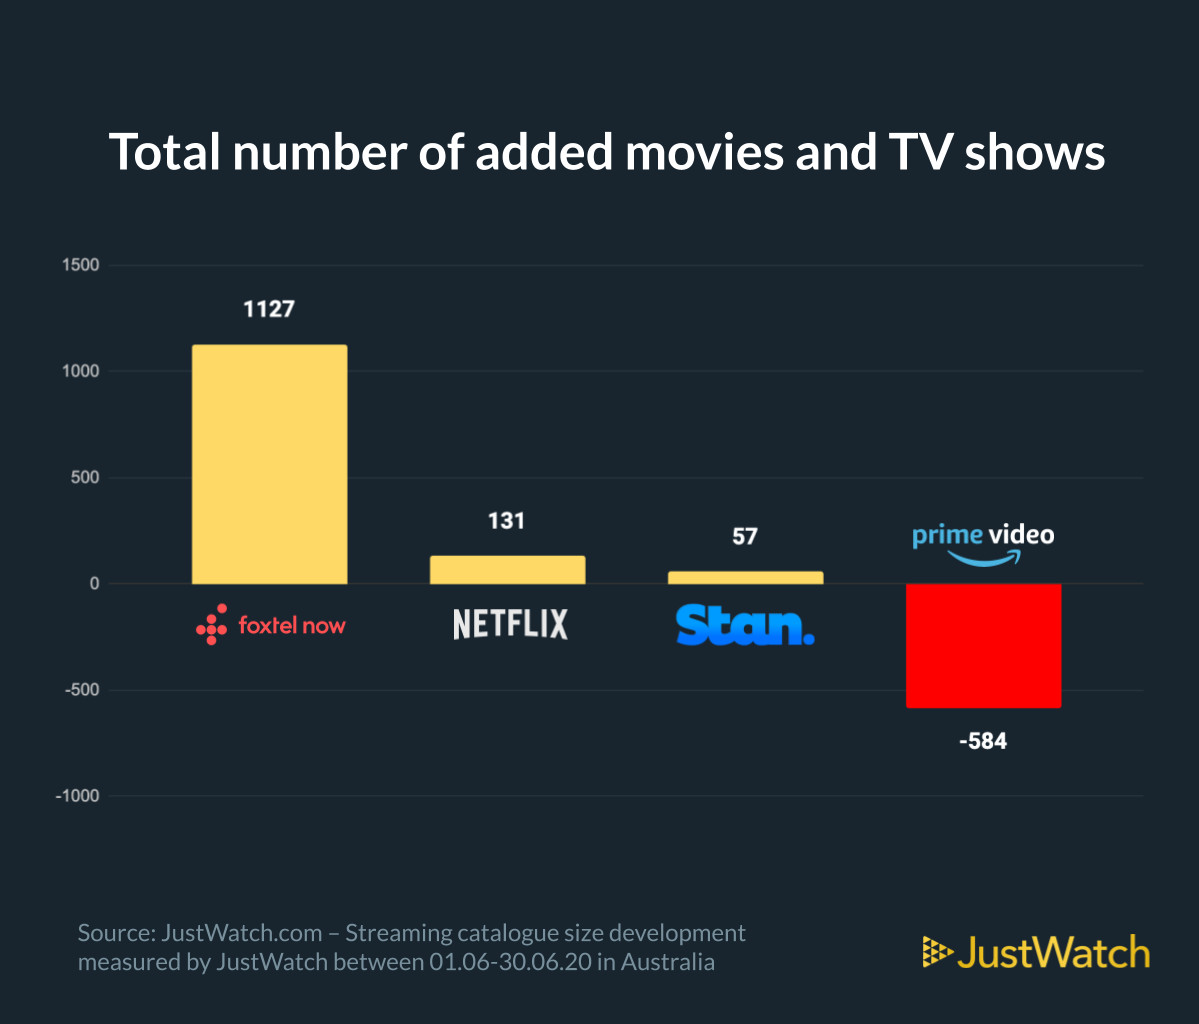 A graph showing the total number of added movies and TV shows in the Australian Market with data from JustWatch